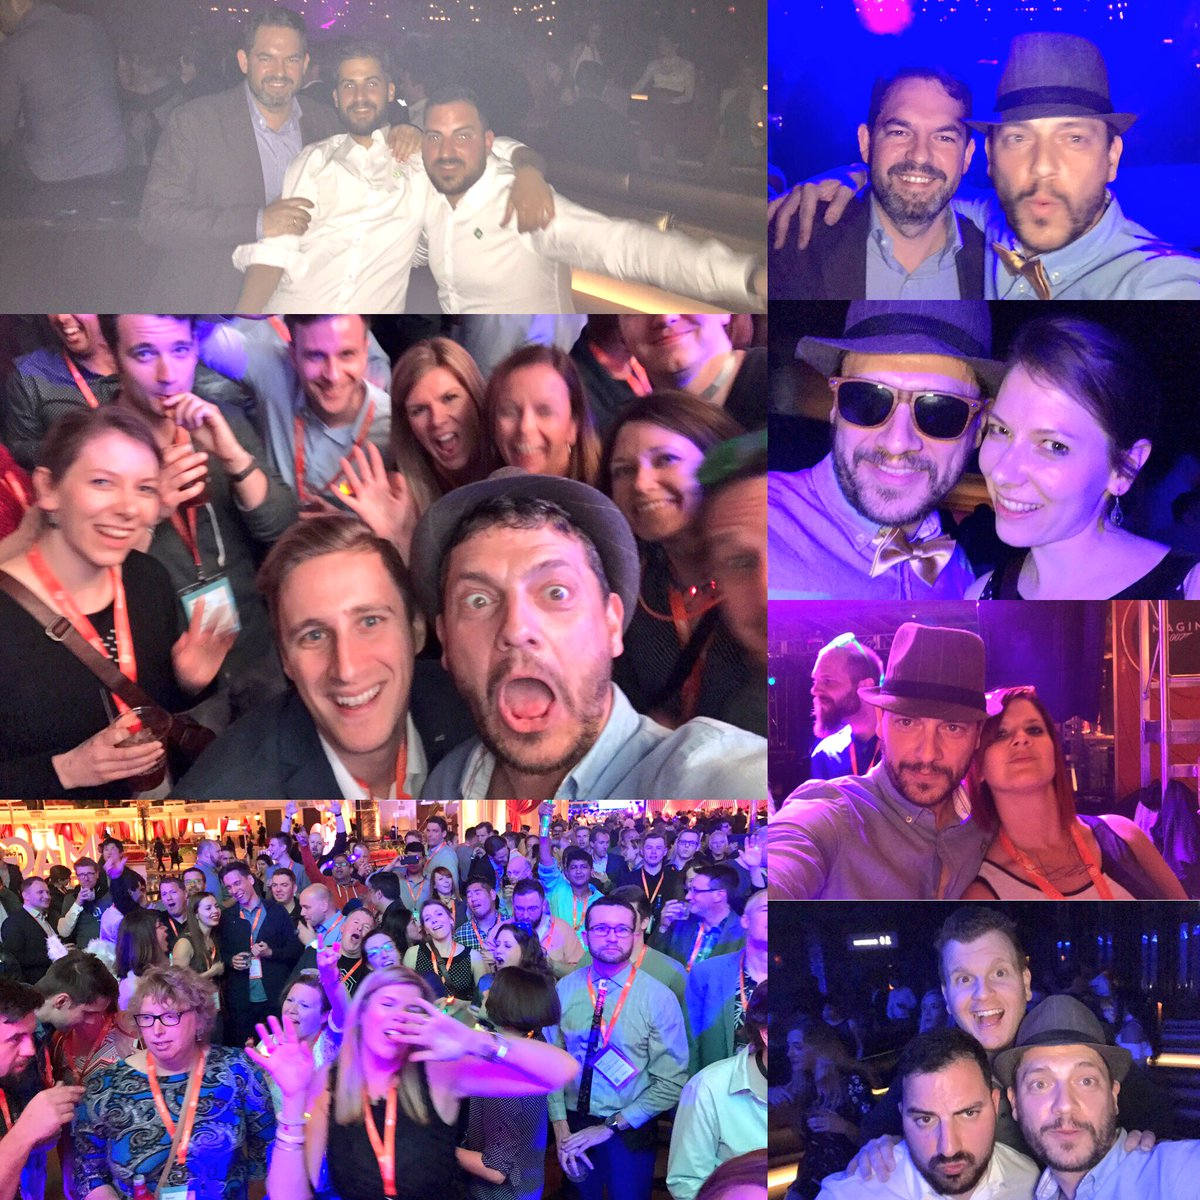 ignacioriesco: What a #Magentoimagine #legendary party! #epic See you all soon friends!!! #realmagento https://t.co/fBWXrVjcQ3